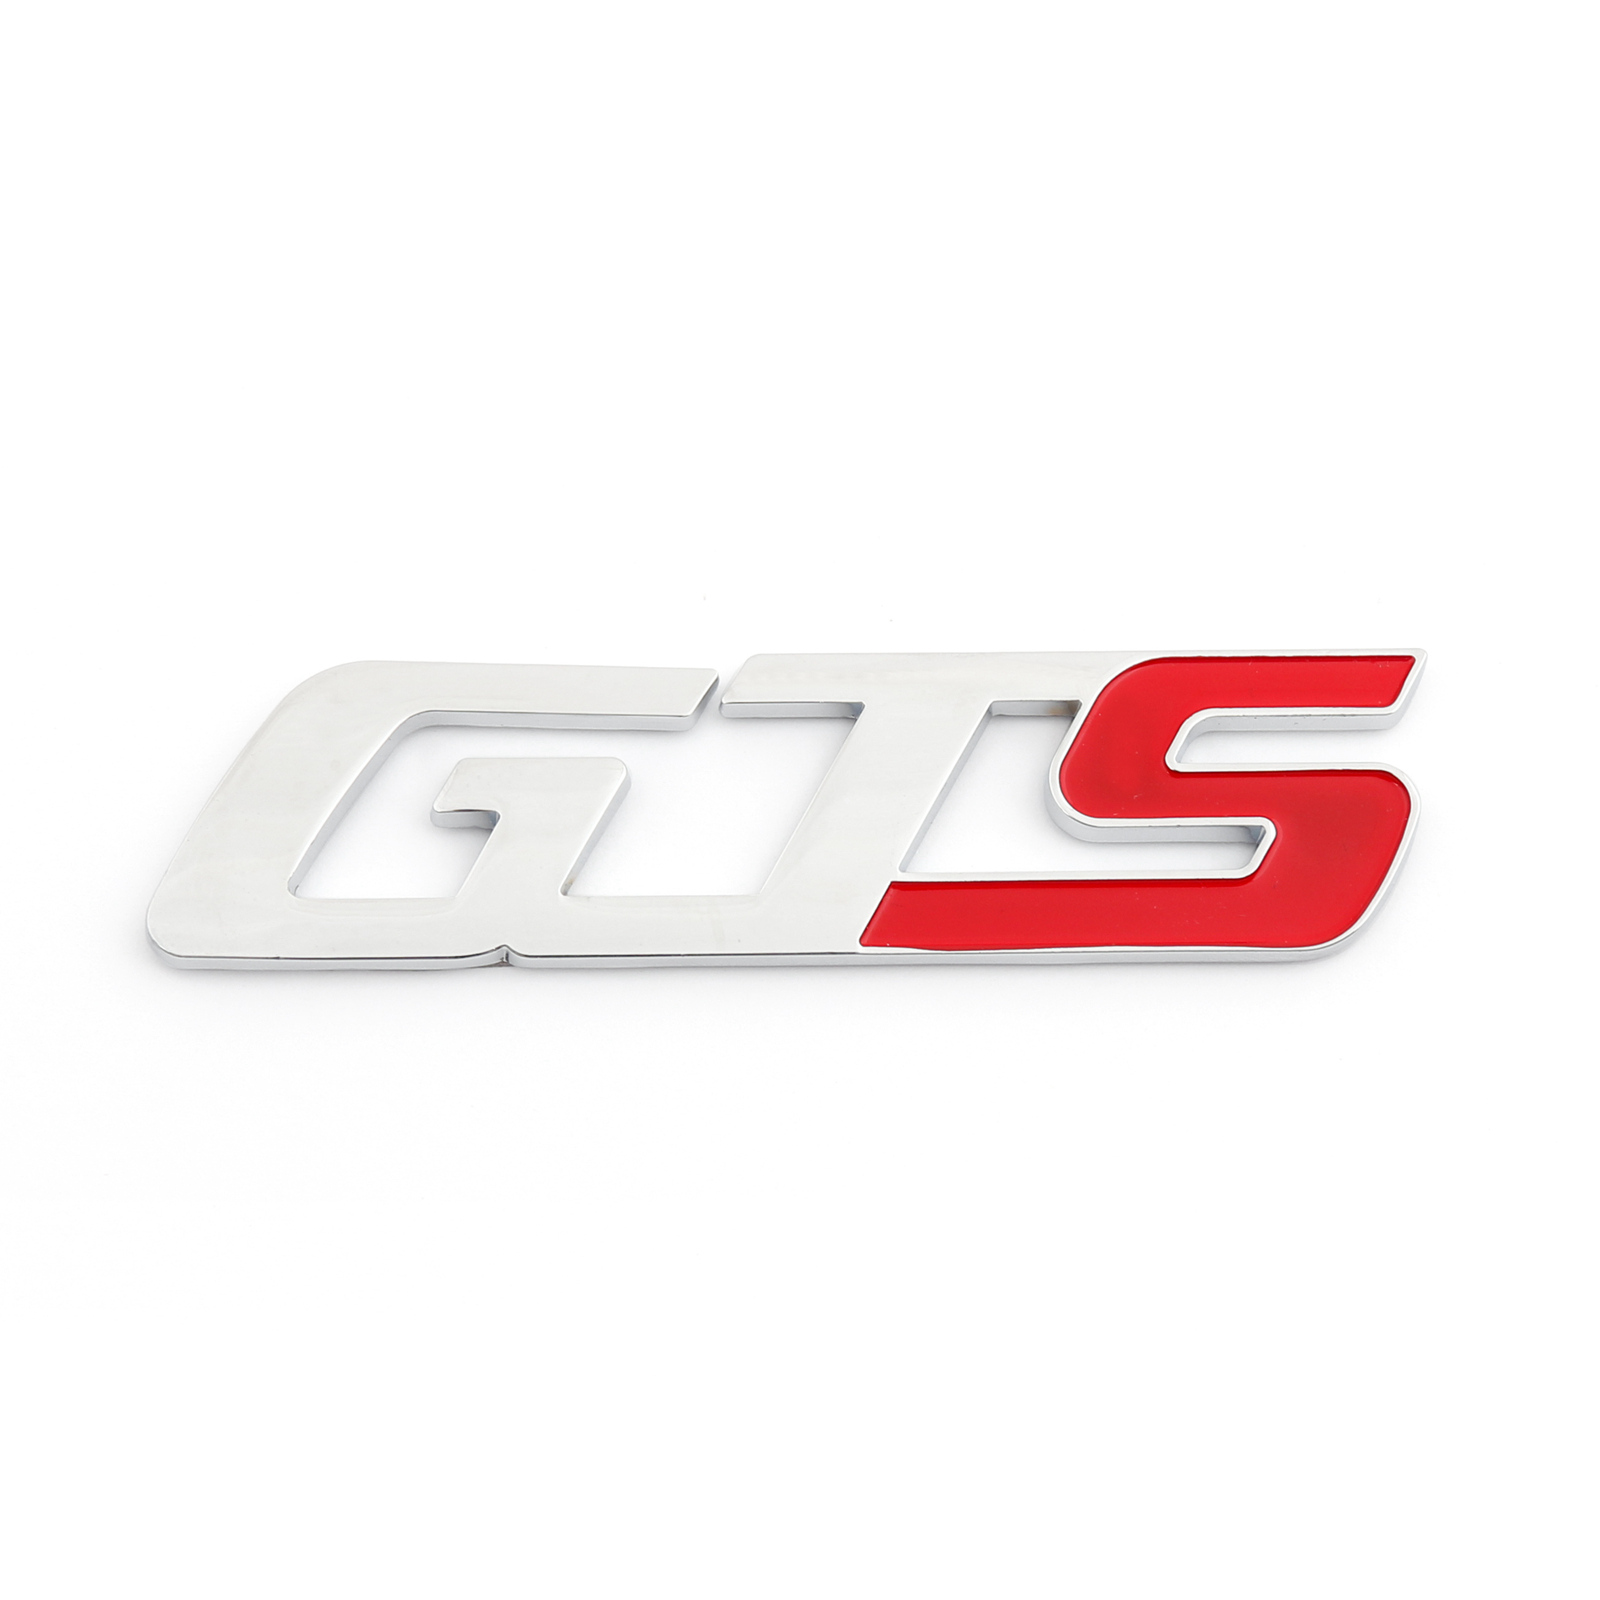 3d gts logo car truck emblem badge sticker decal for. Black Bedroom Furniture Sets. Home Design Ideas